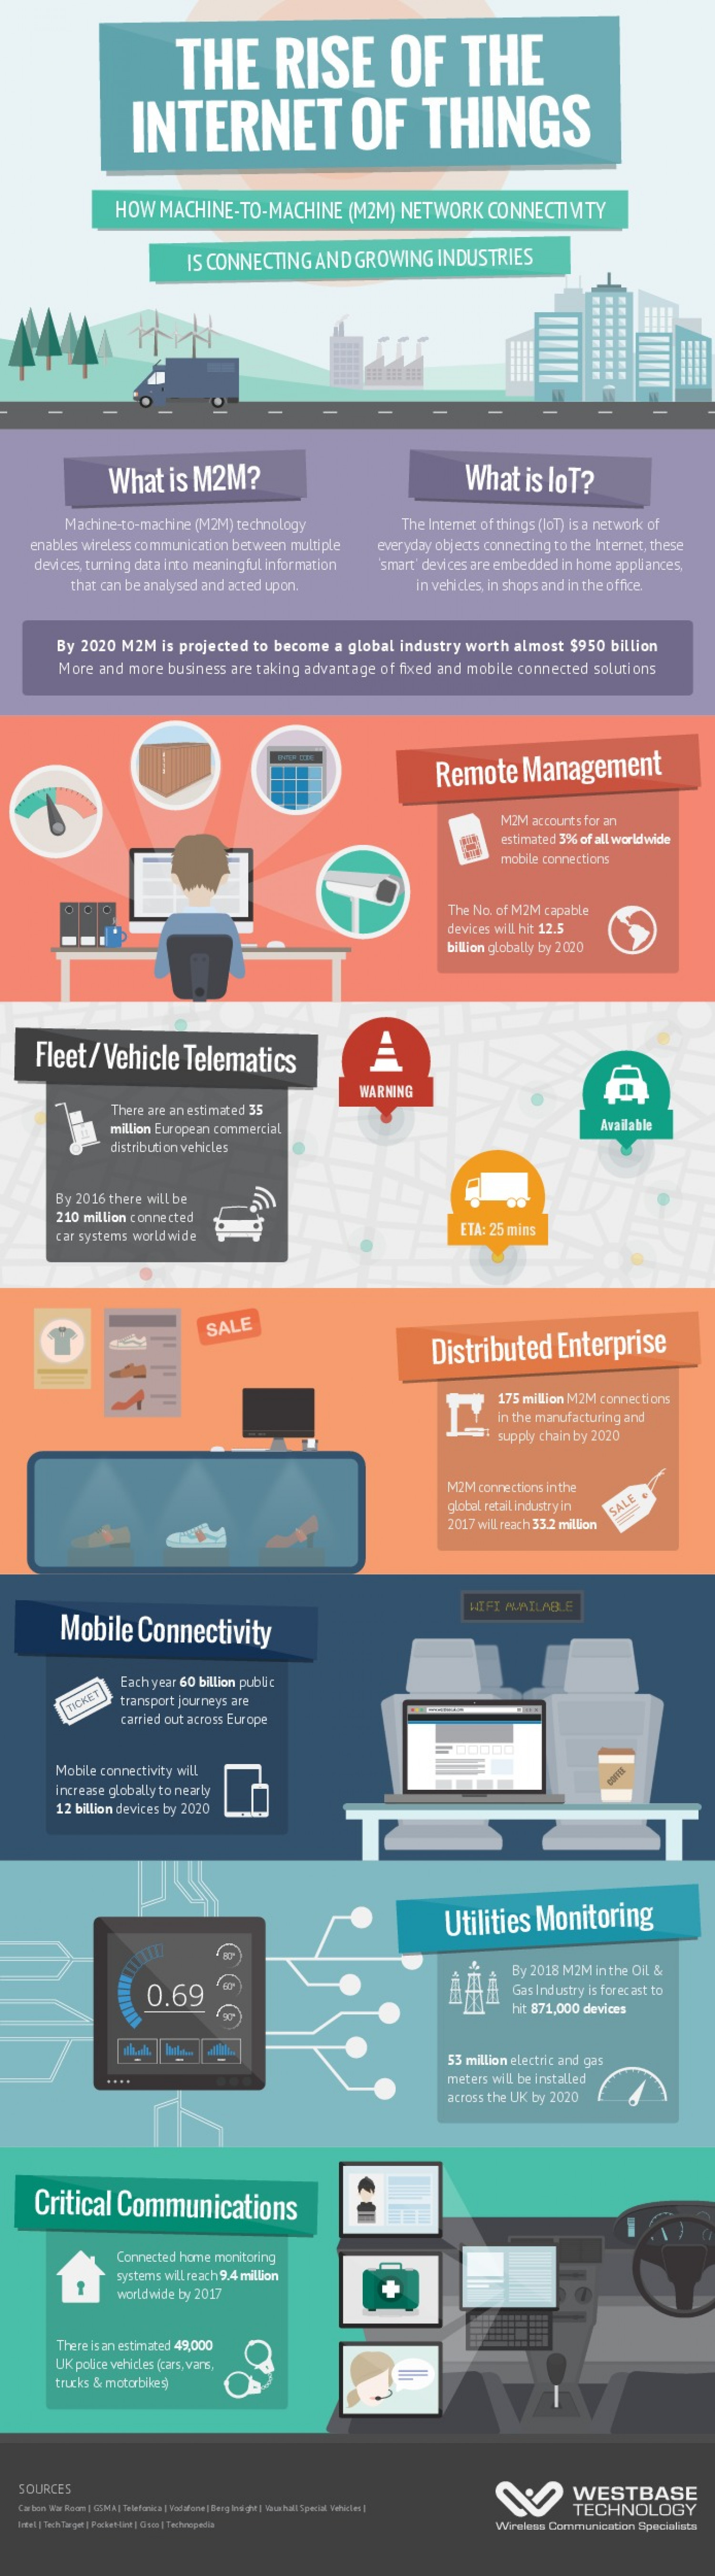 The Rise of the Internet of Things Infographic